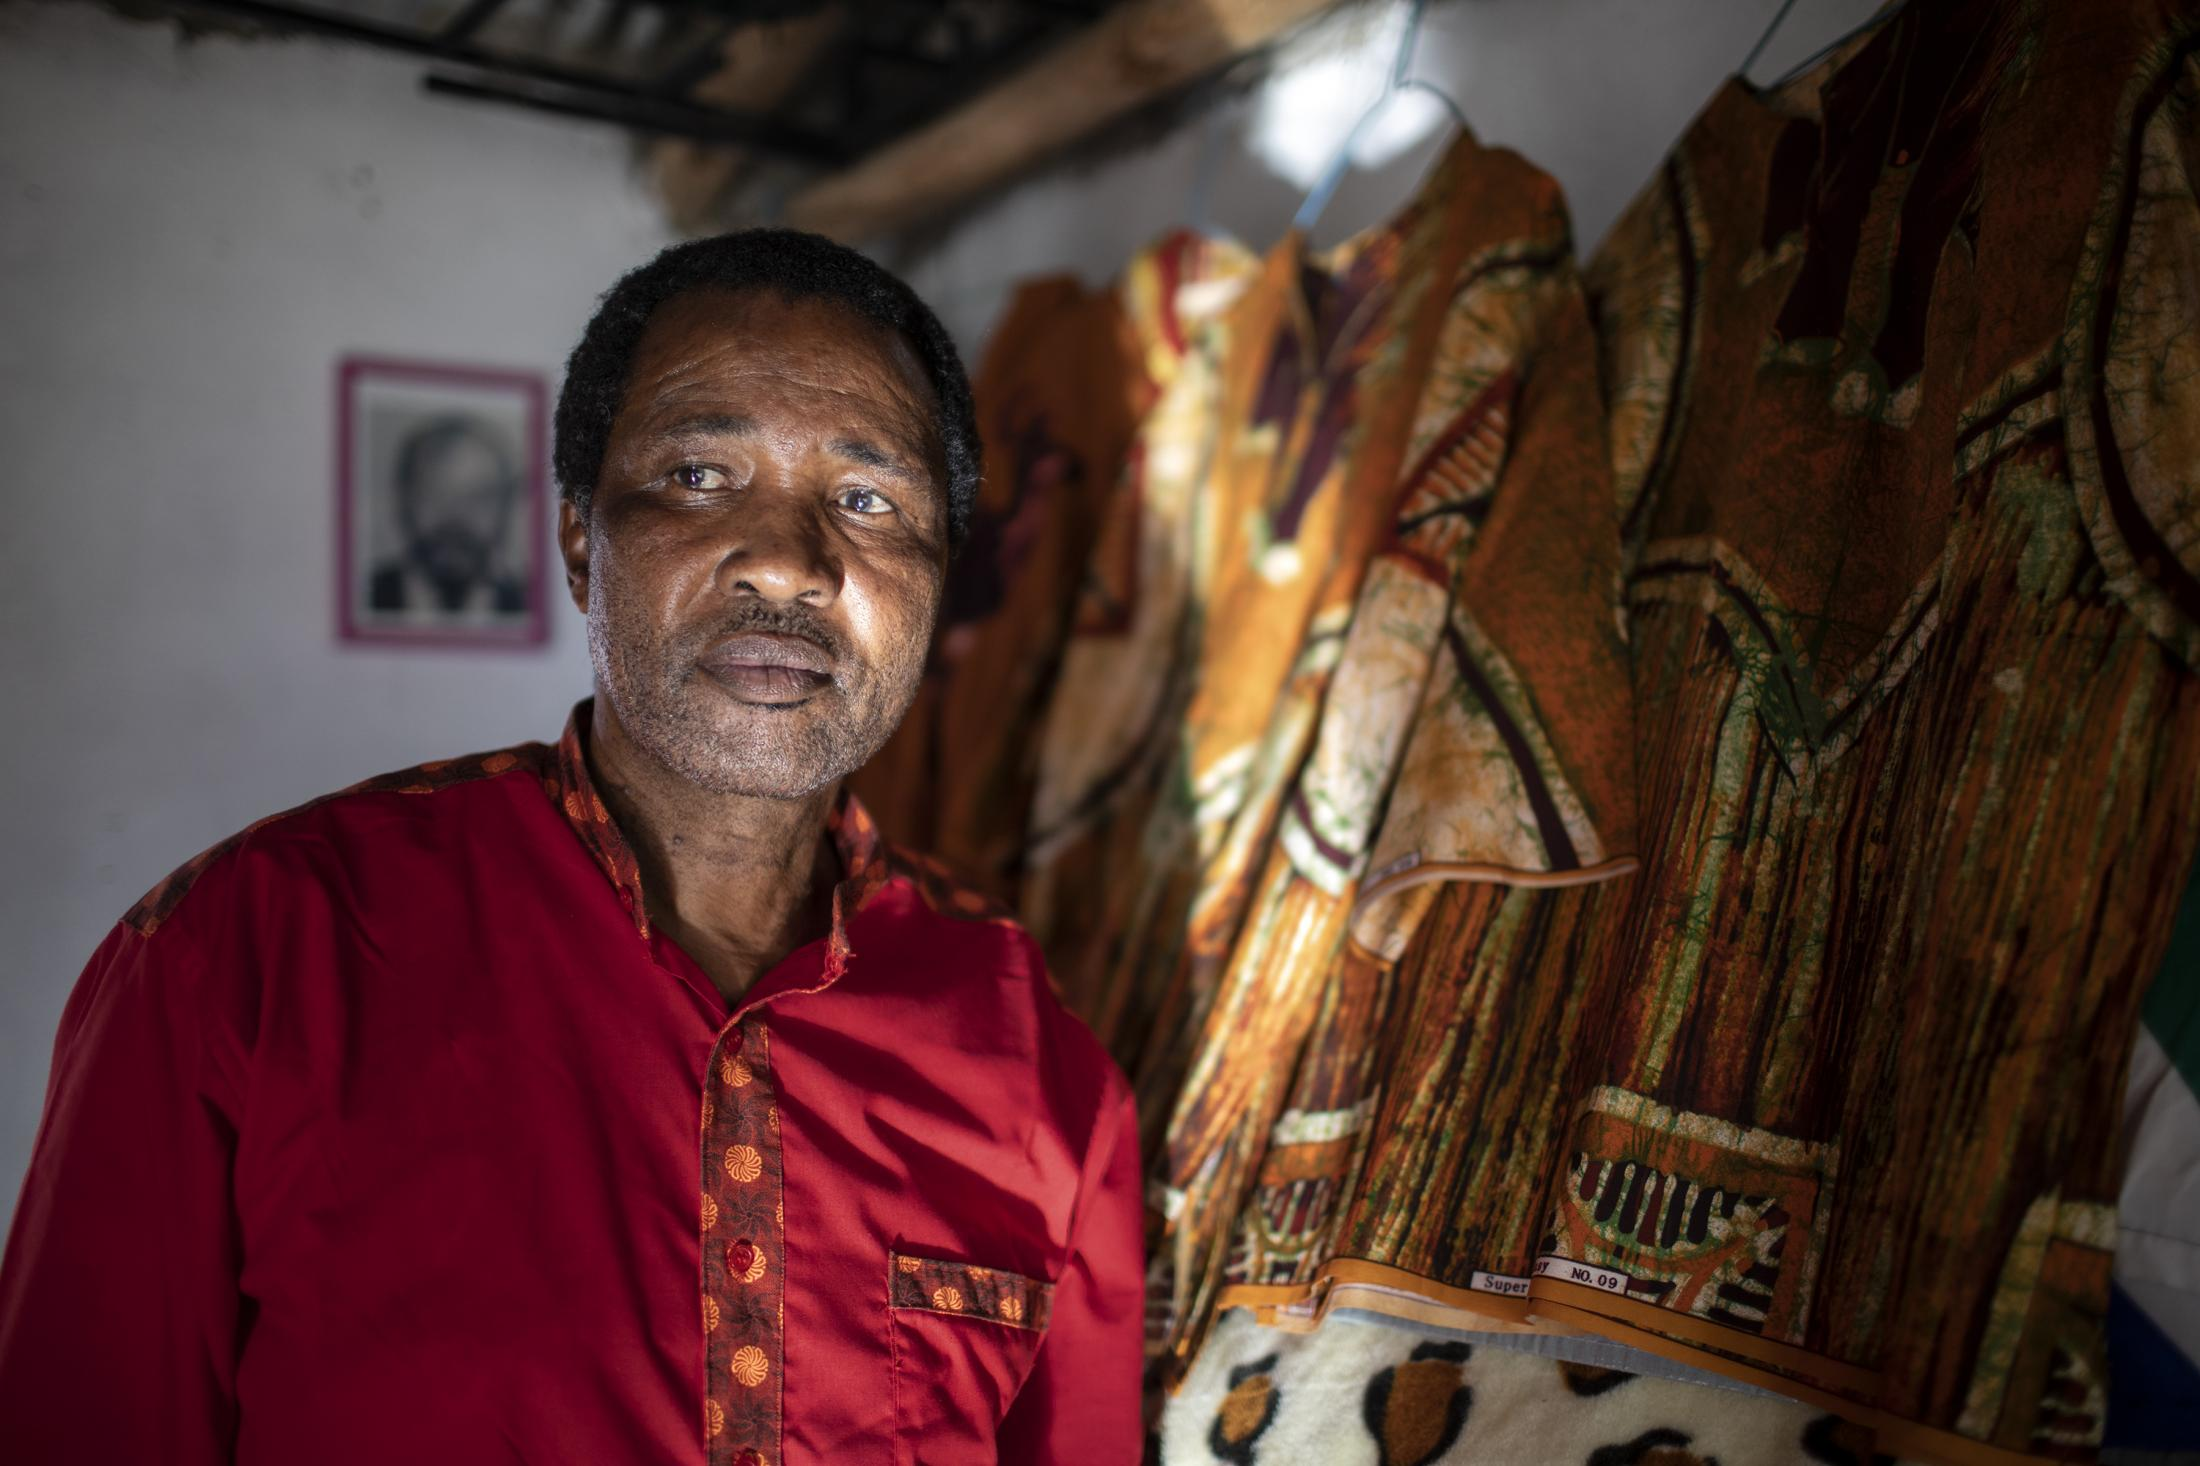 17 February 2020: James Vilakazi (58) is pictured in his home in Watersmeet, Ladysmith, Kwa-Zulu Natal. He first joined the Morning Stars and then the Ladysmith Red Lions in 1982 and has been performing Isicathamiya for 12 years.